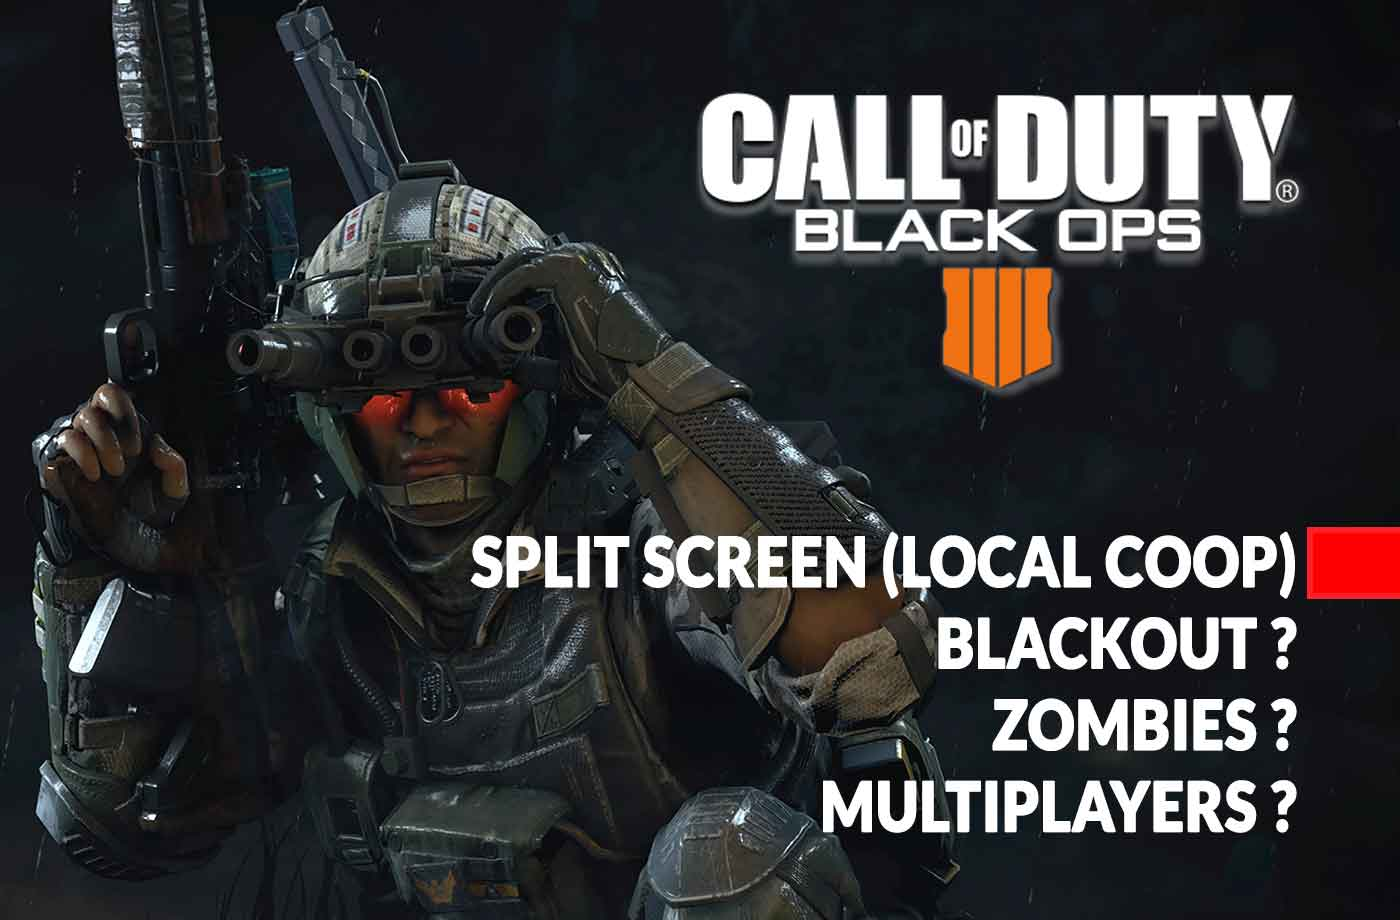 Call of Duty Black Ops 4 how to play split screen (local coop) on